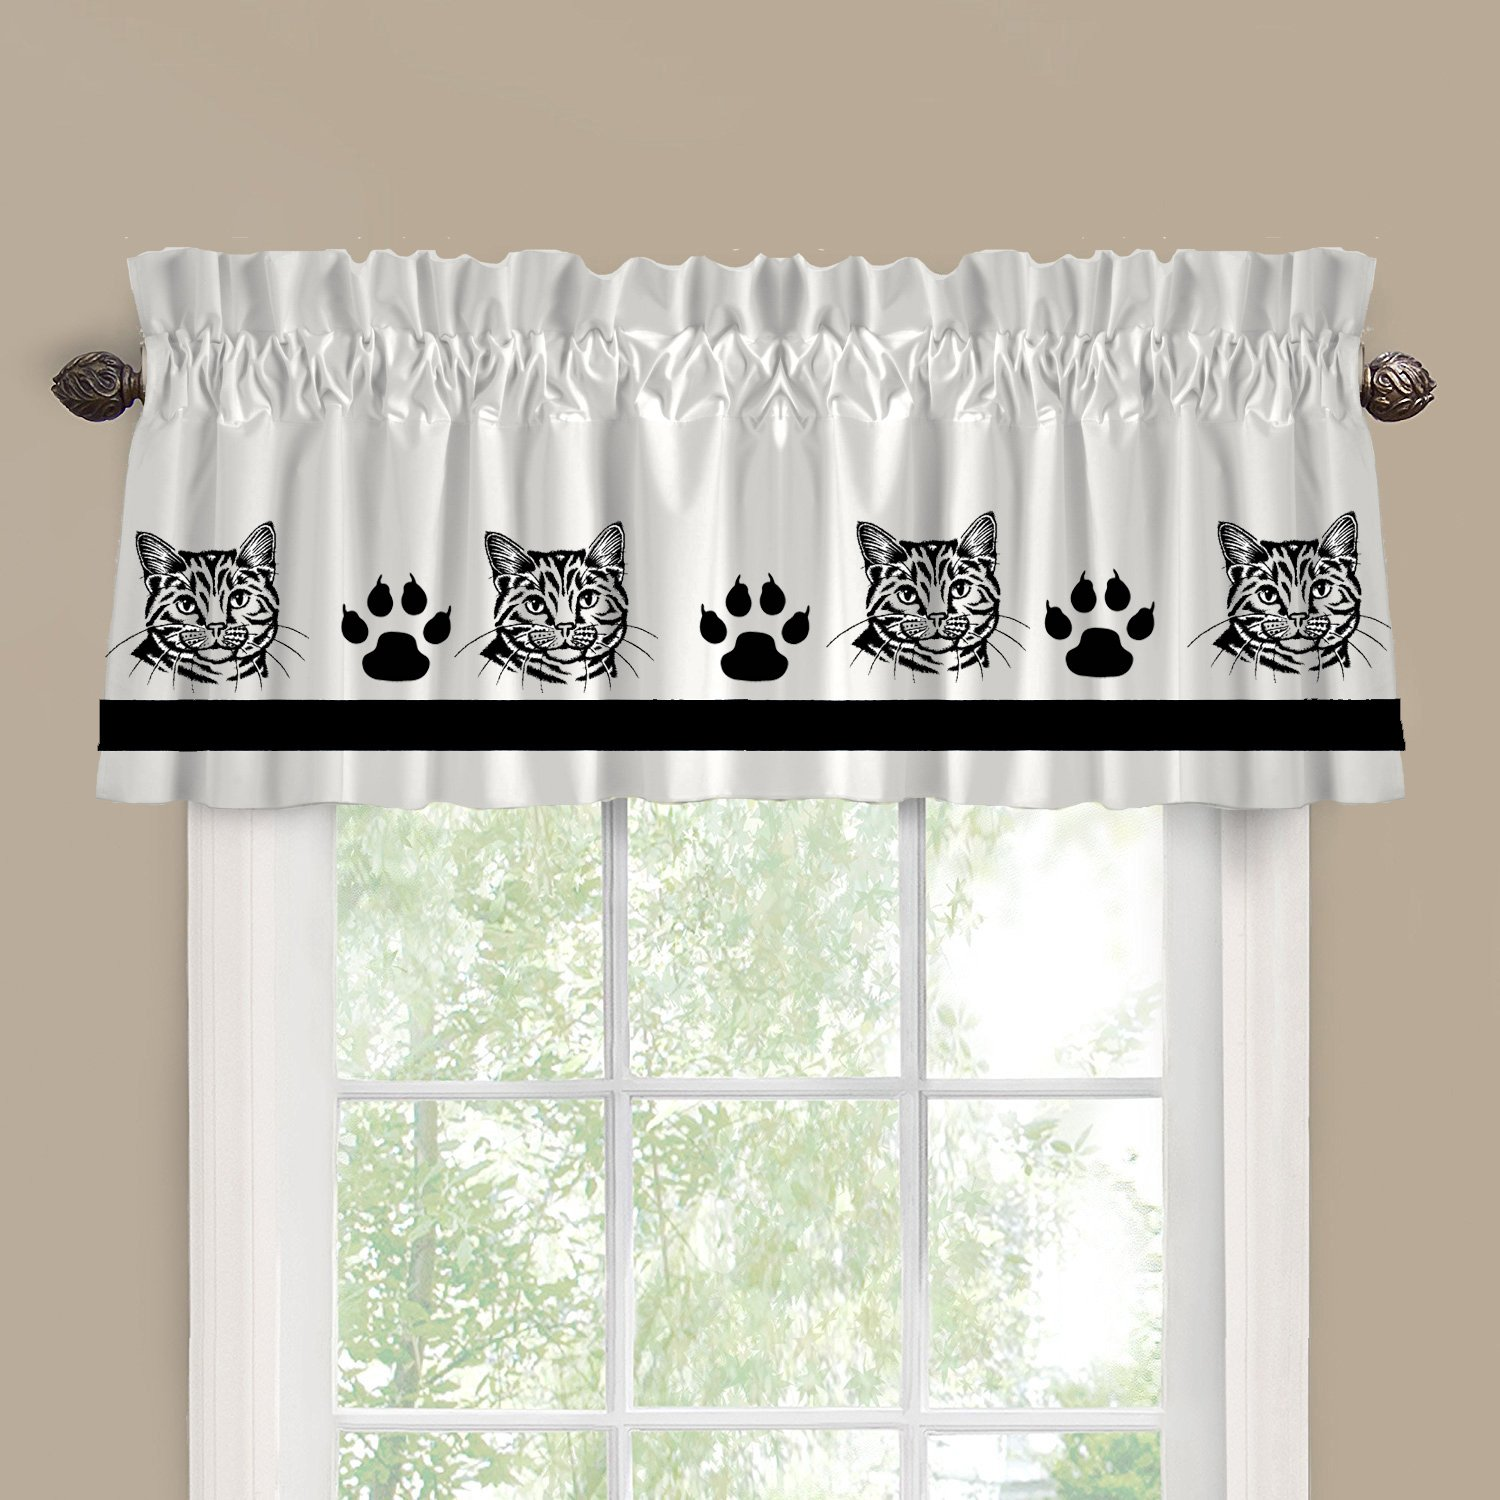 Calico Cat Cutie Face Window Valance / Window Treatment - In Your Choice of Colors - Custom Made